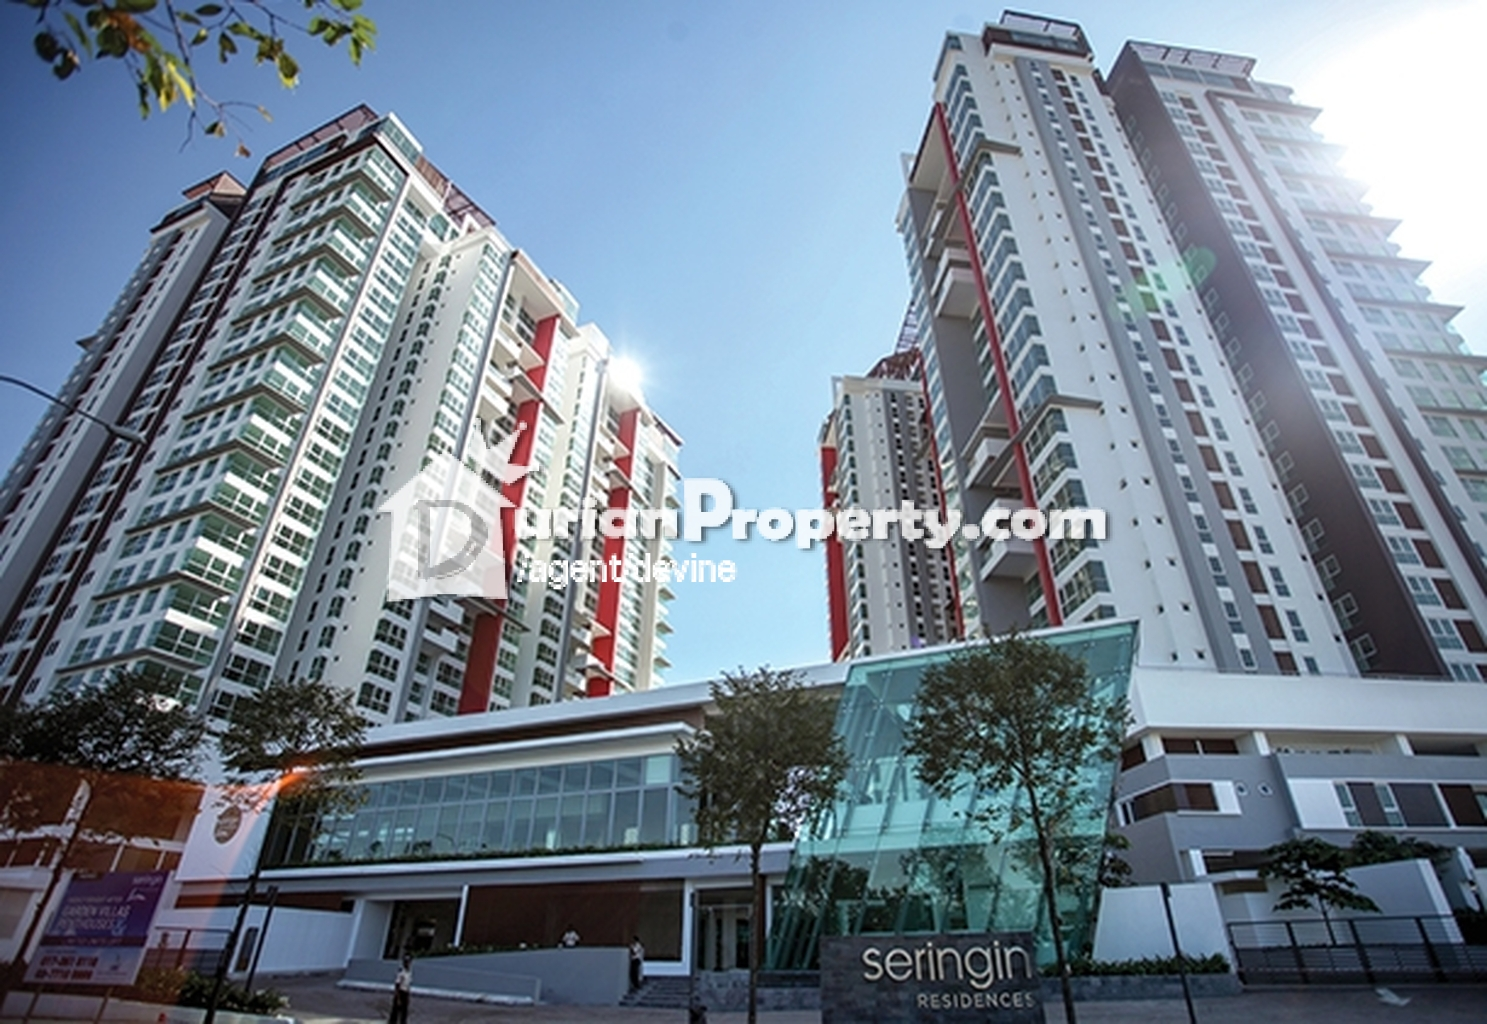 Condo For Sale at Seringin Residences, Kuchai Lama